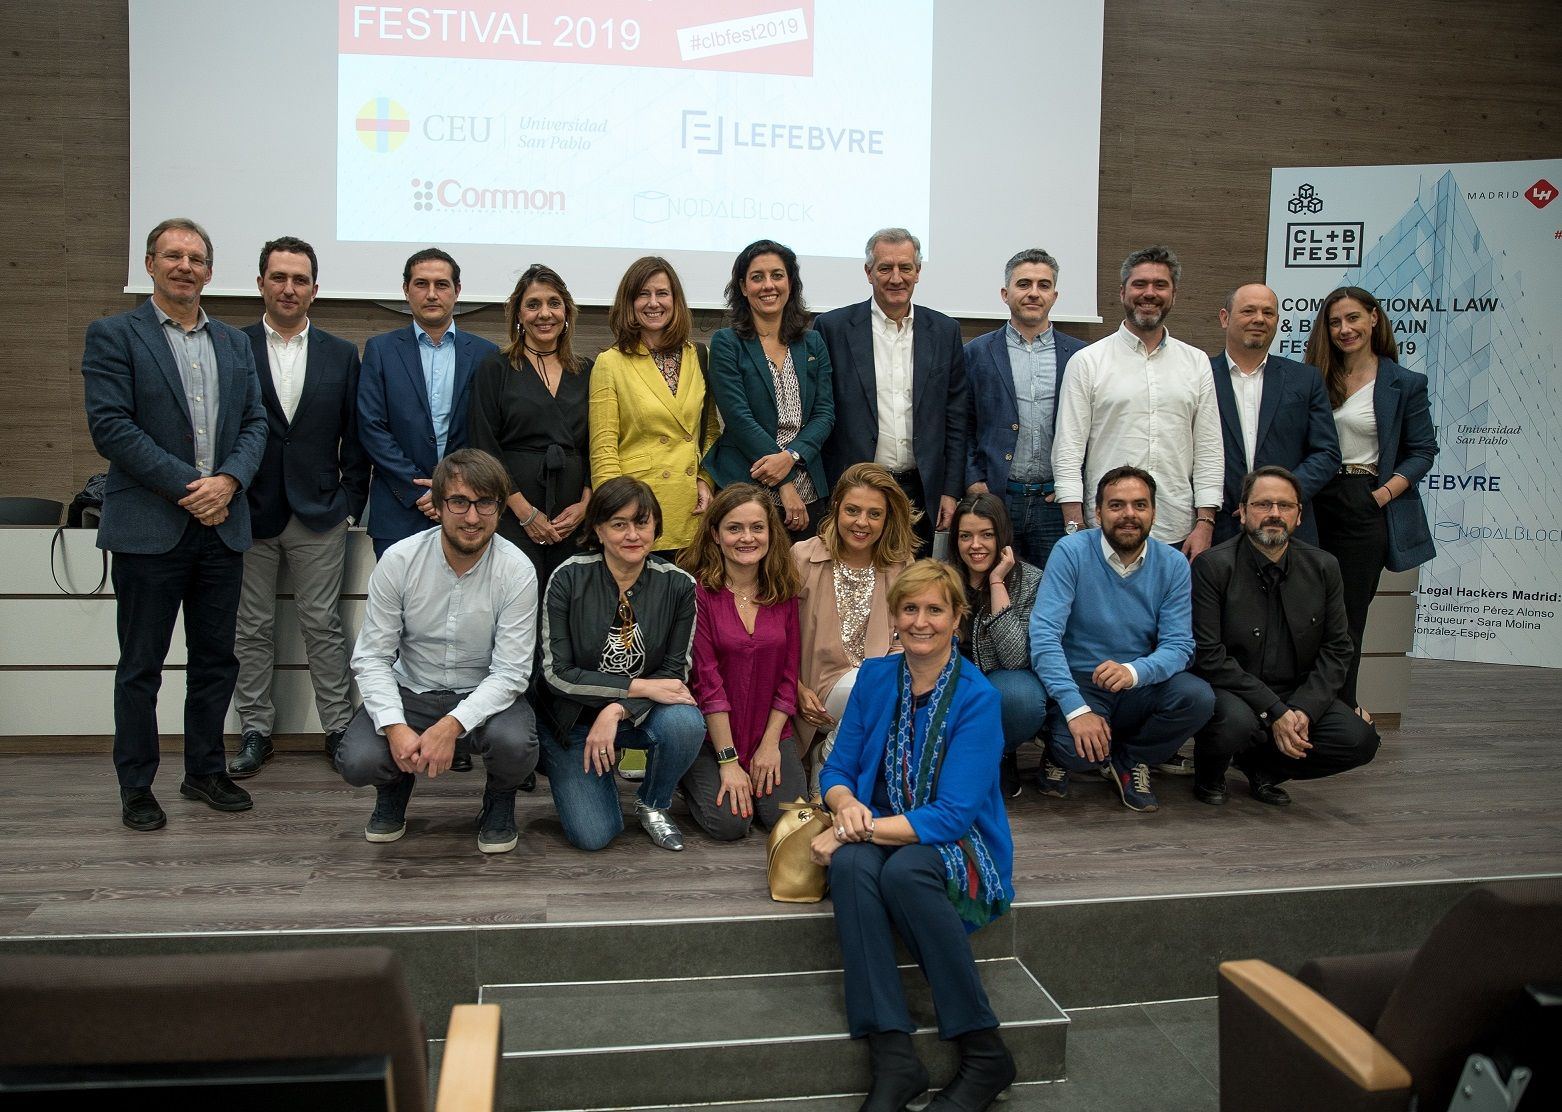 Foto de Computational Law & Blockchain Festival